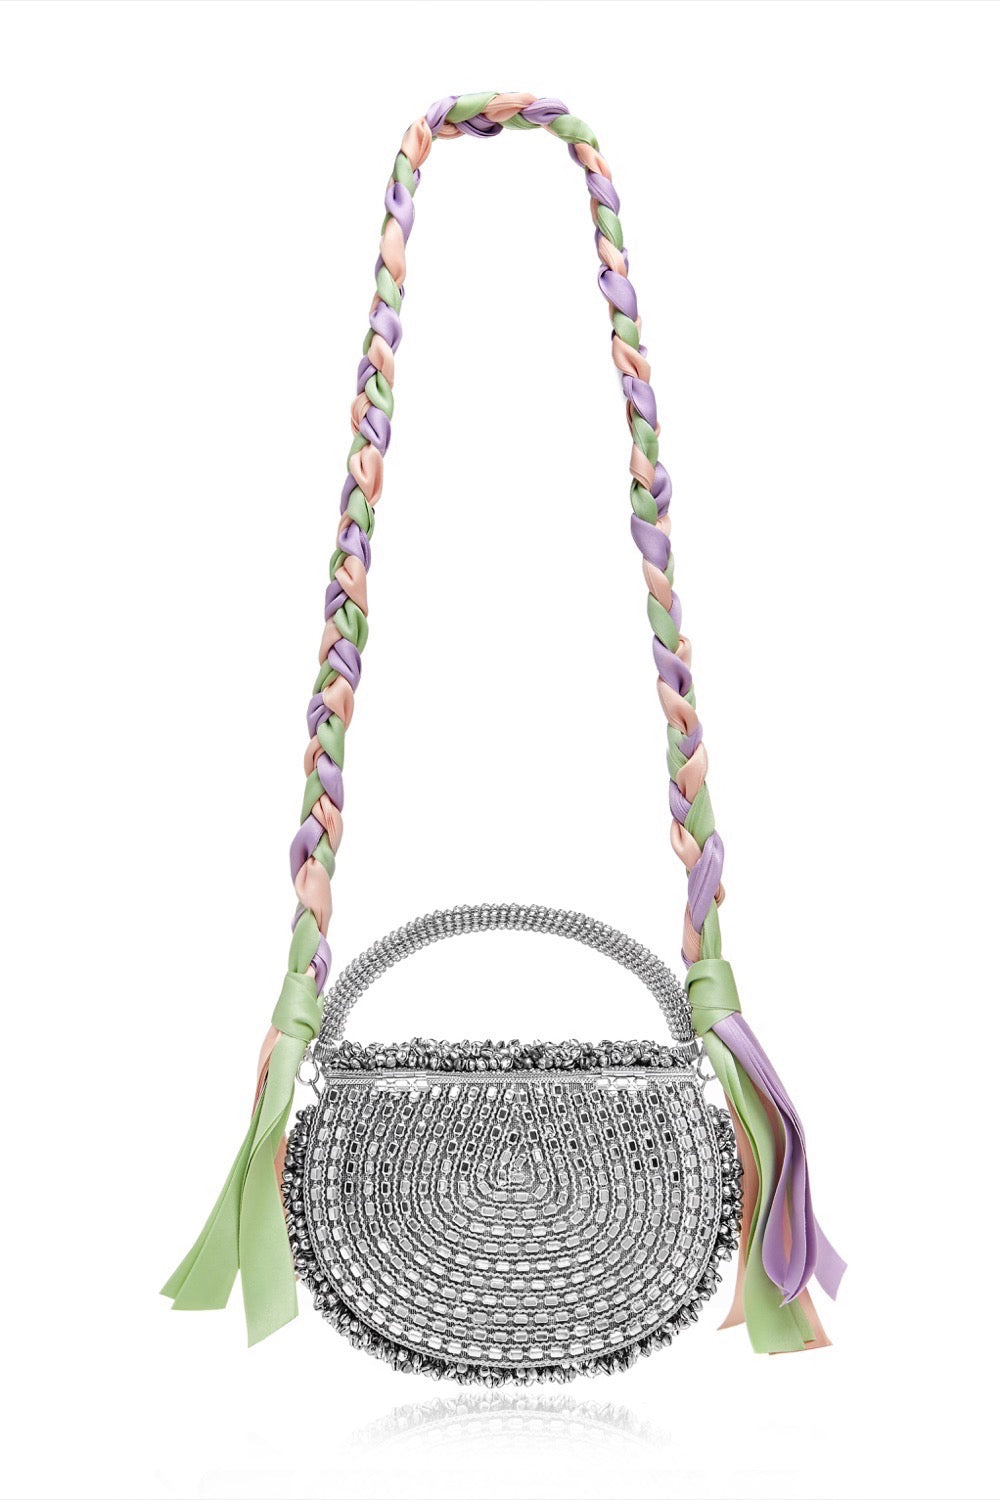 Mae Cassidy Malini Dream Silver Pastel Ribbon Plaited Handbag.